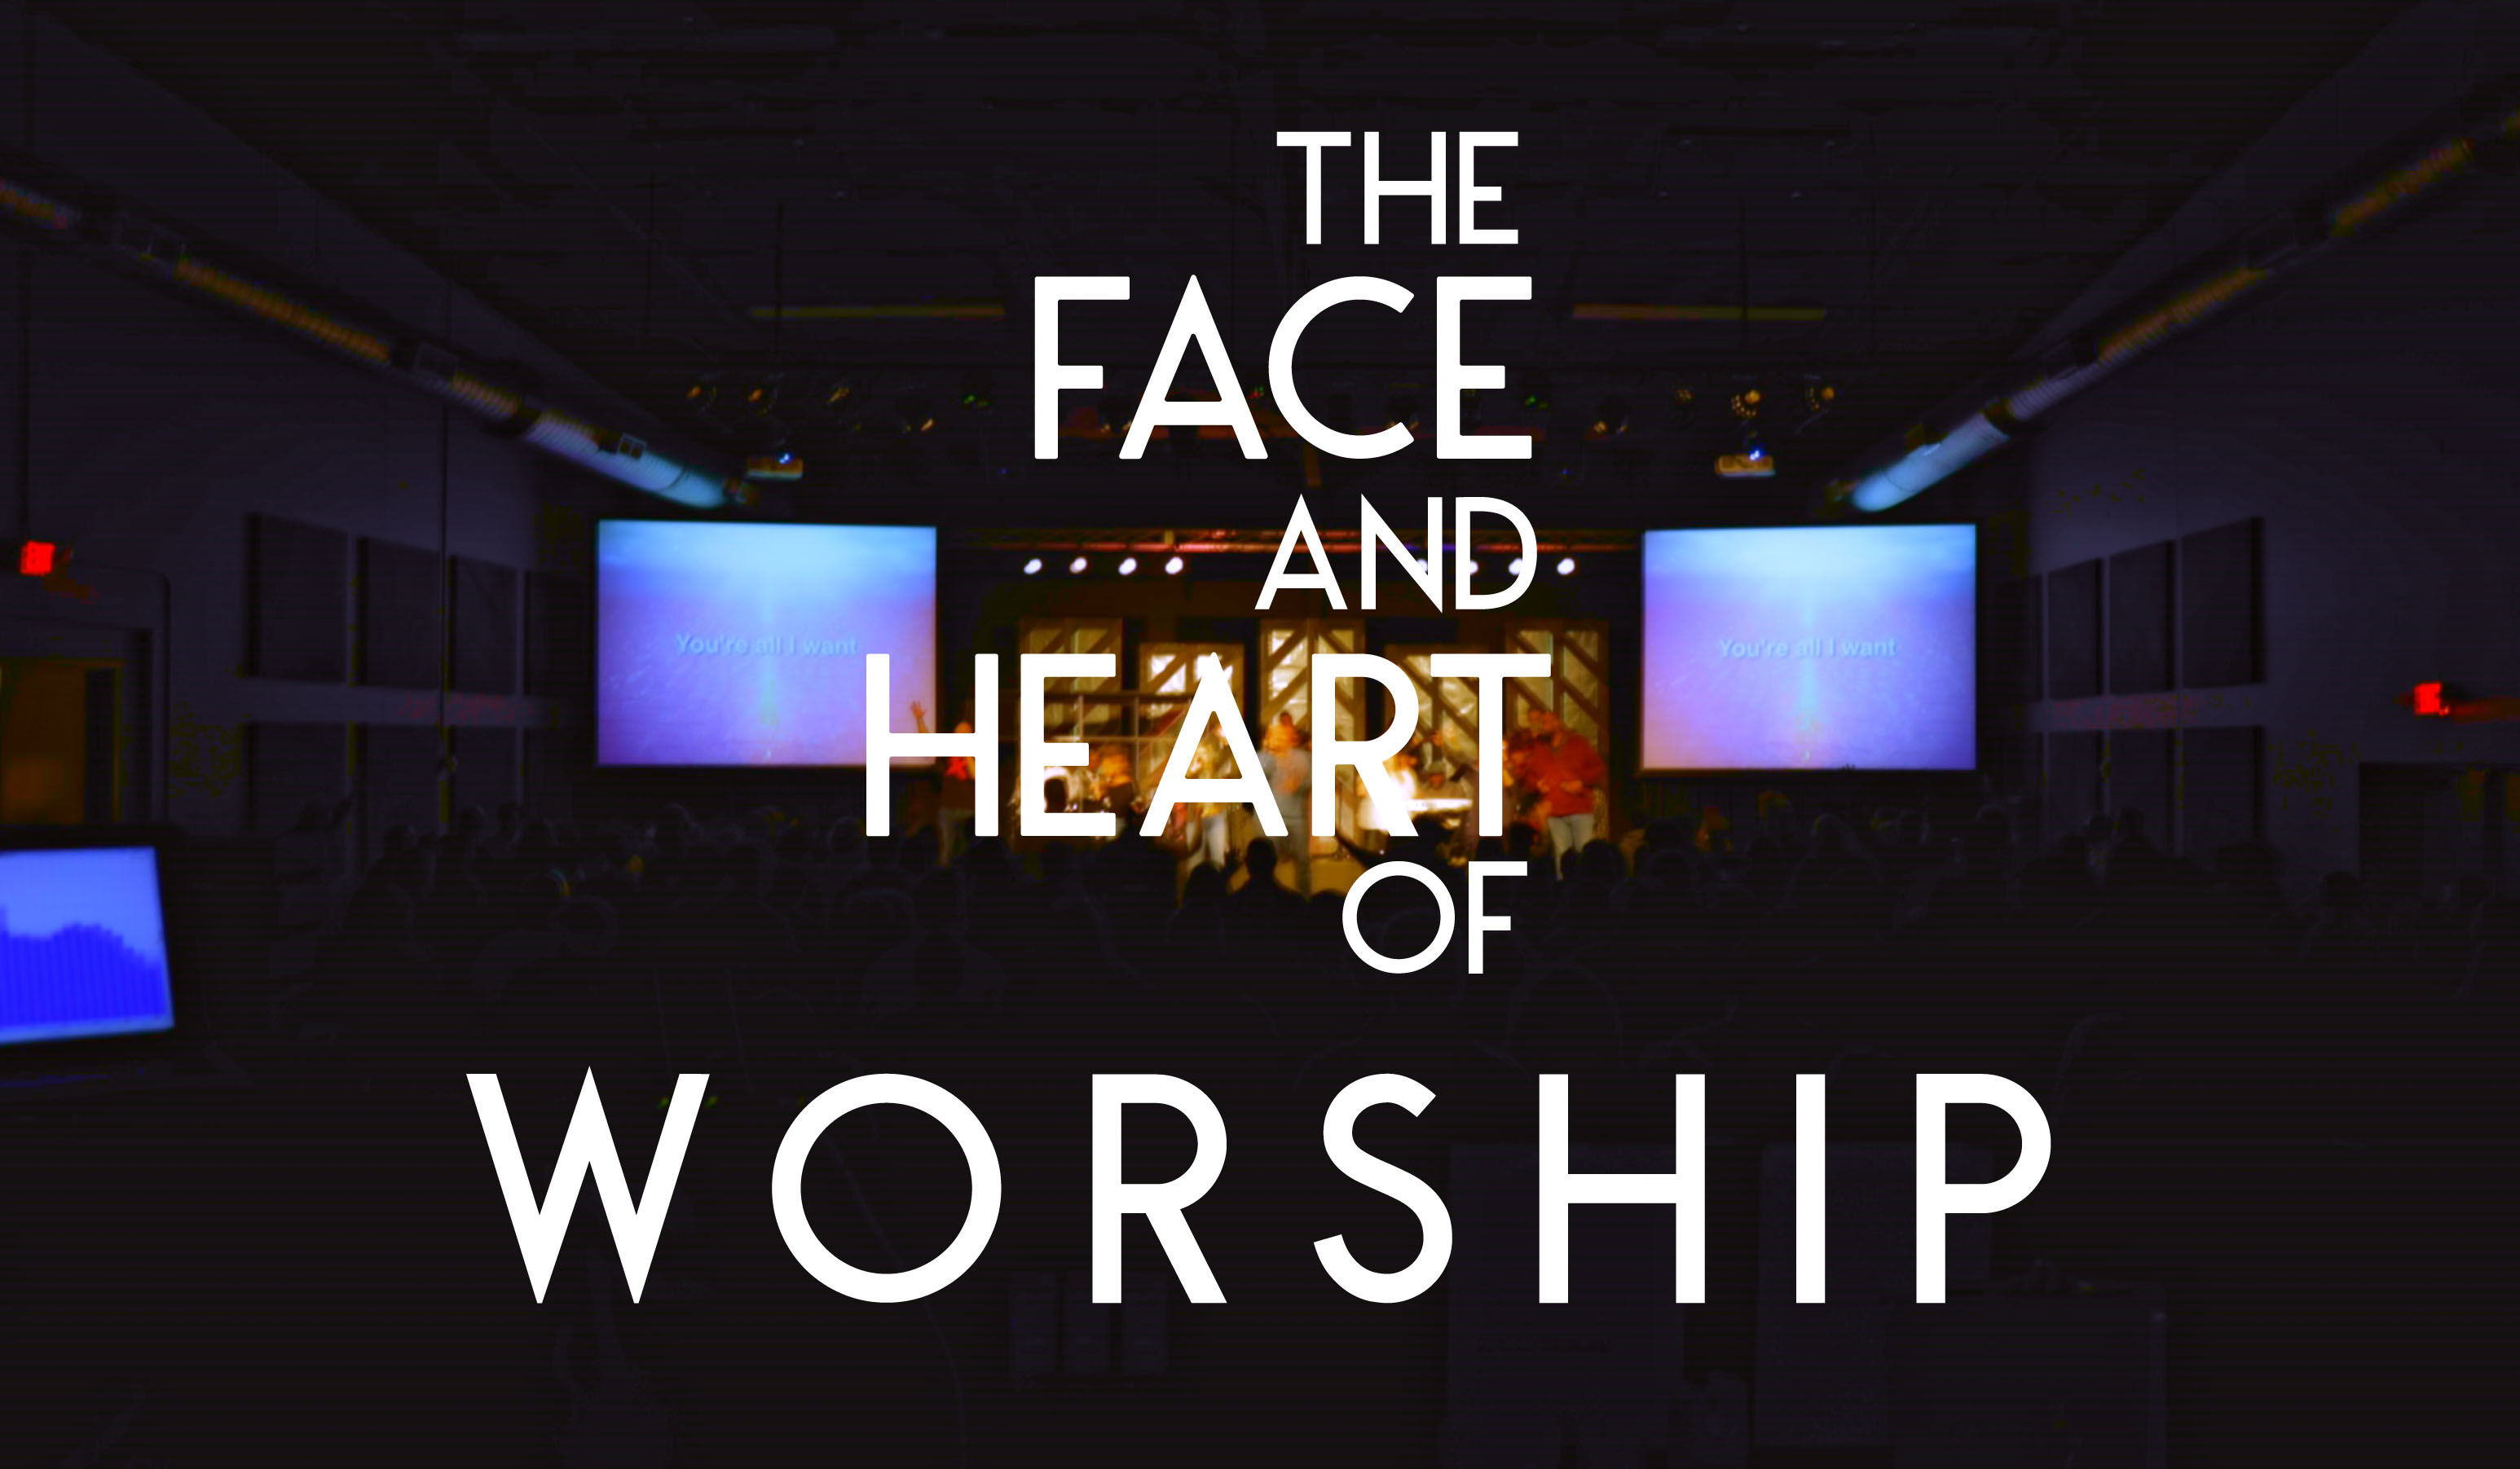 The Face And Heart Of Worship